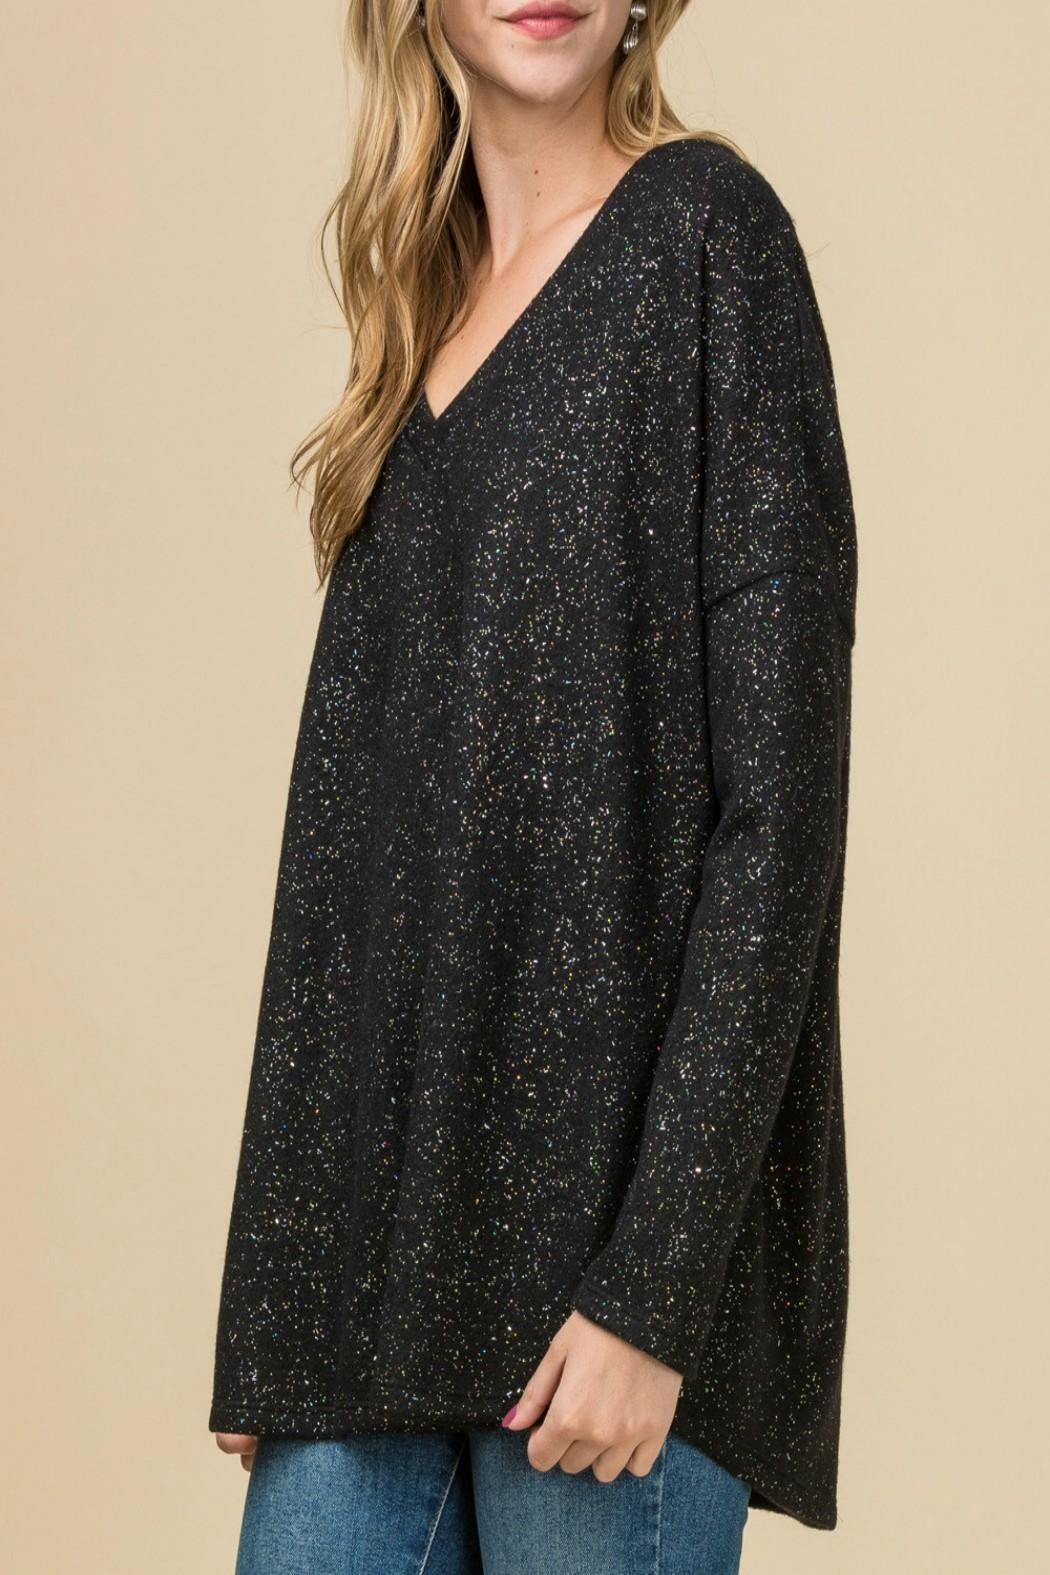 Entro Metallic Speckled Top - Back Cropped Image